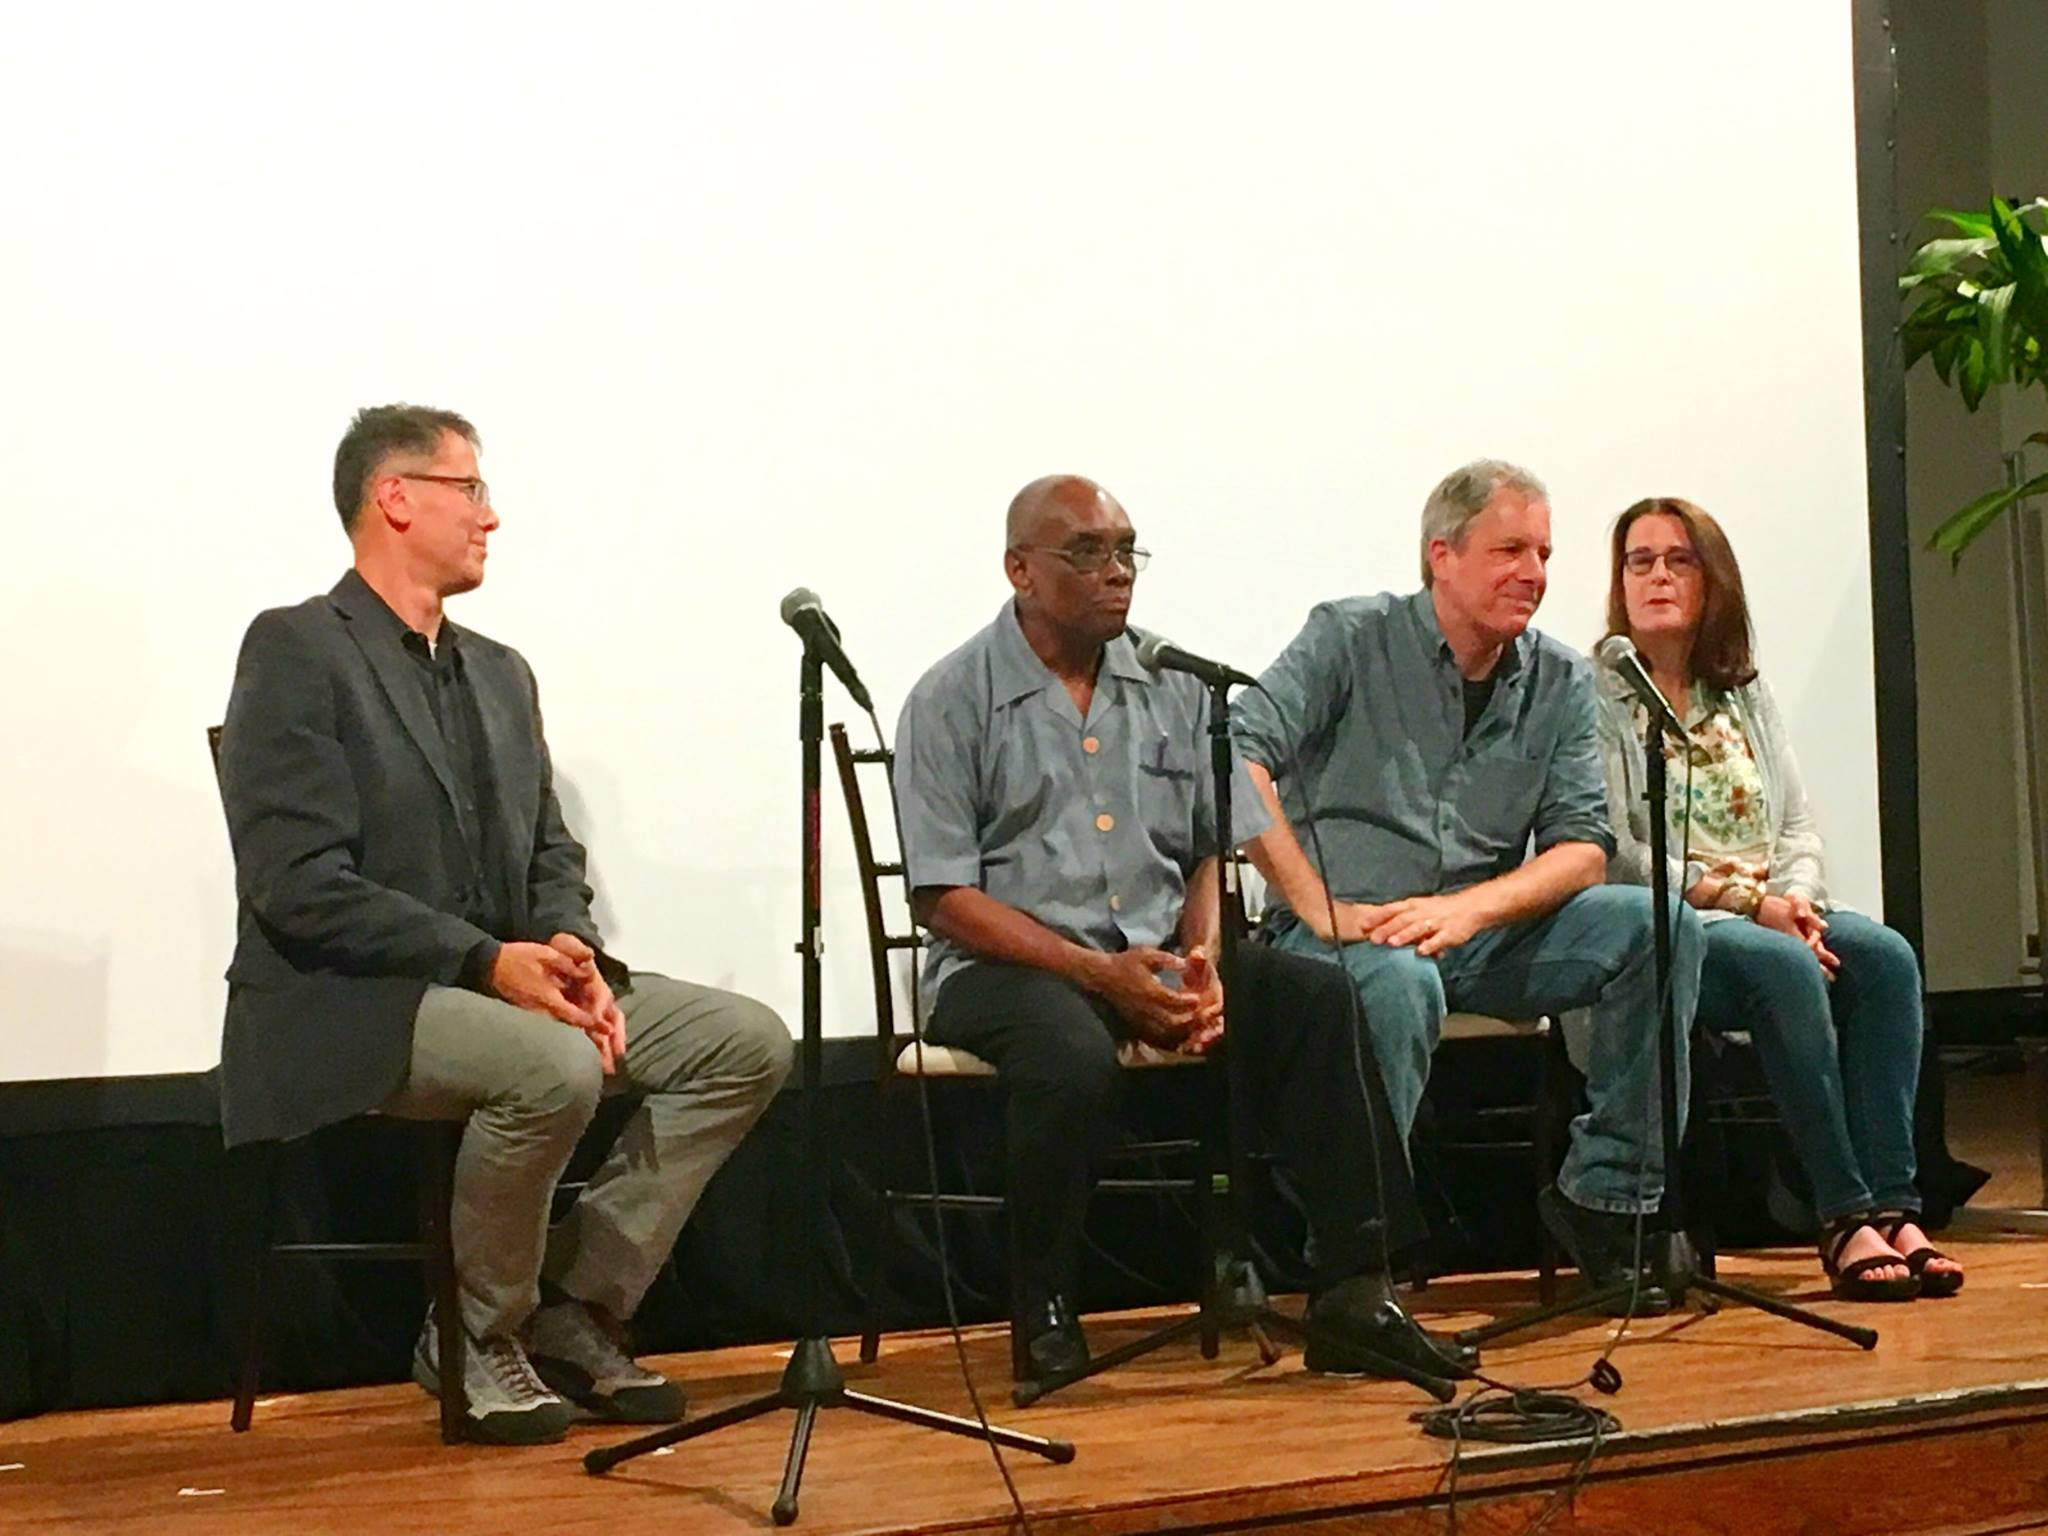 Q&A Session with Andy Gale, Board Chair of Raising Haiti Foundation, Father Joseph, Jeffrey (director/producer) Kaufman, and Marcia S. Ross (producer).